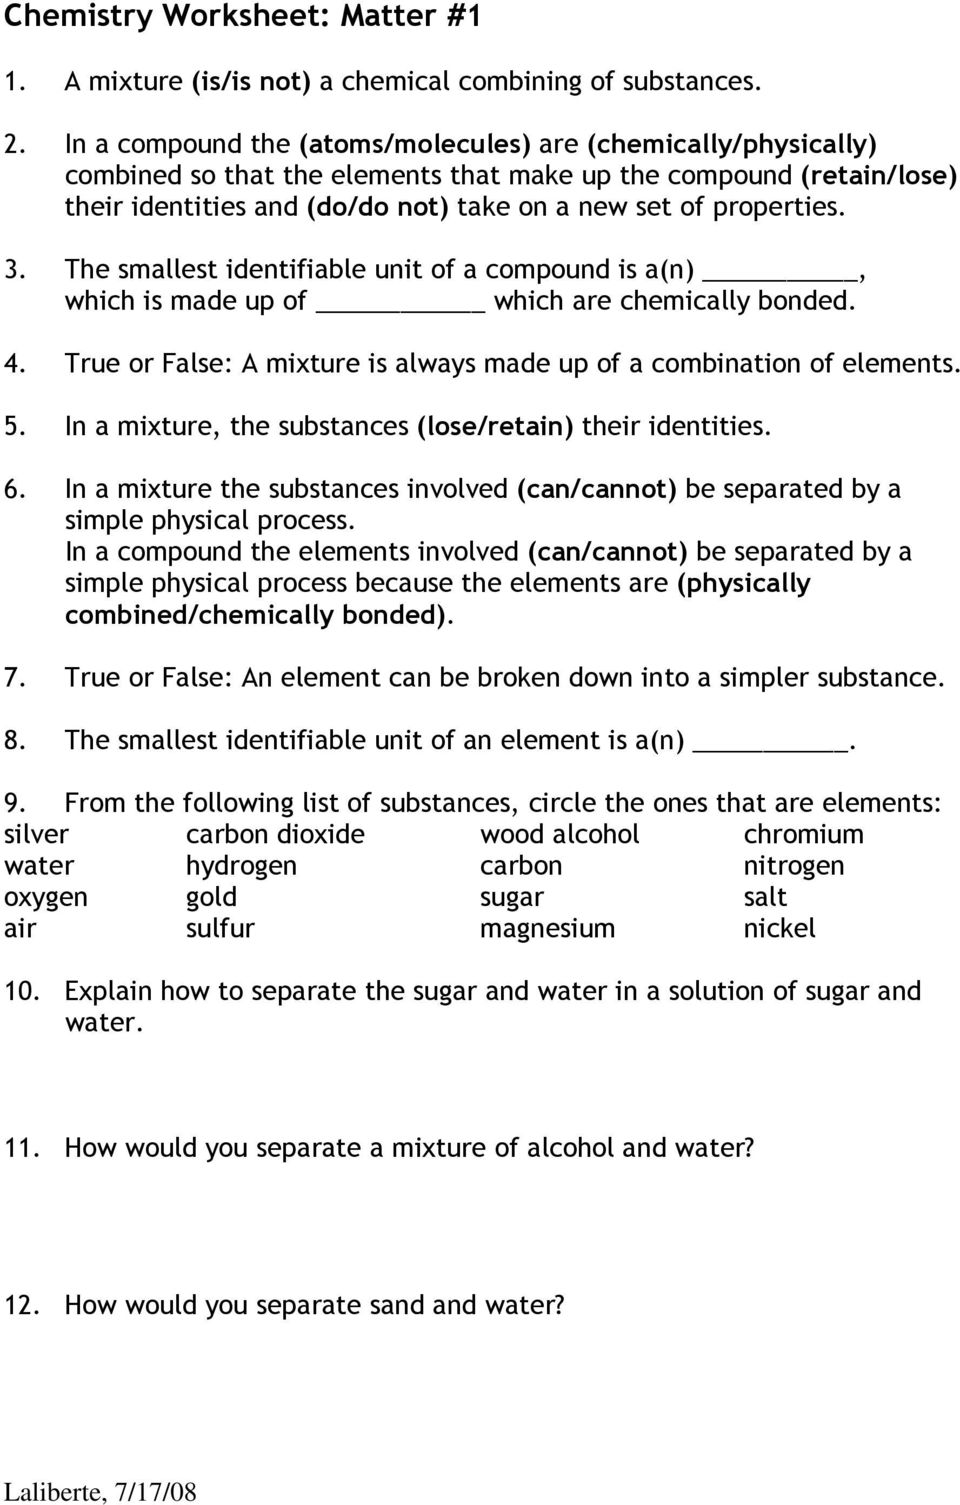 worksheet Chemistry Worksheet Matter 1 Answers chemistry worksheet matter 1 pdf 3 the smallest identifiable unit of a compound is an which